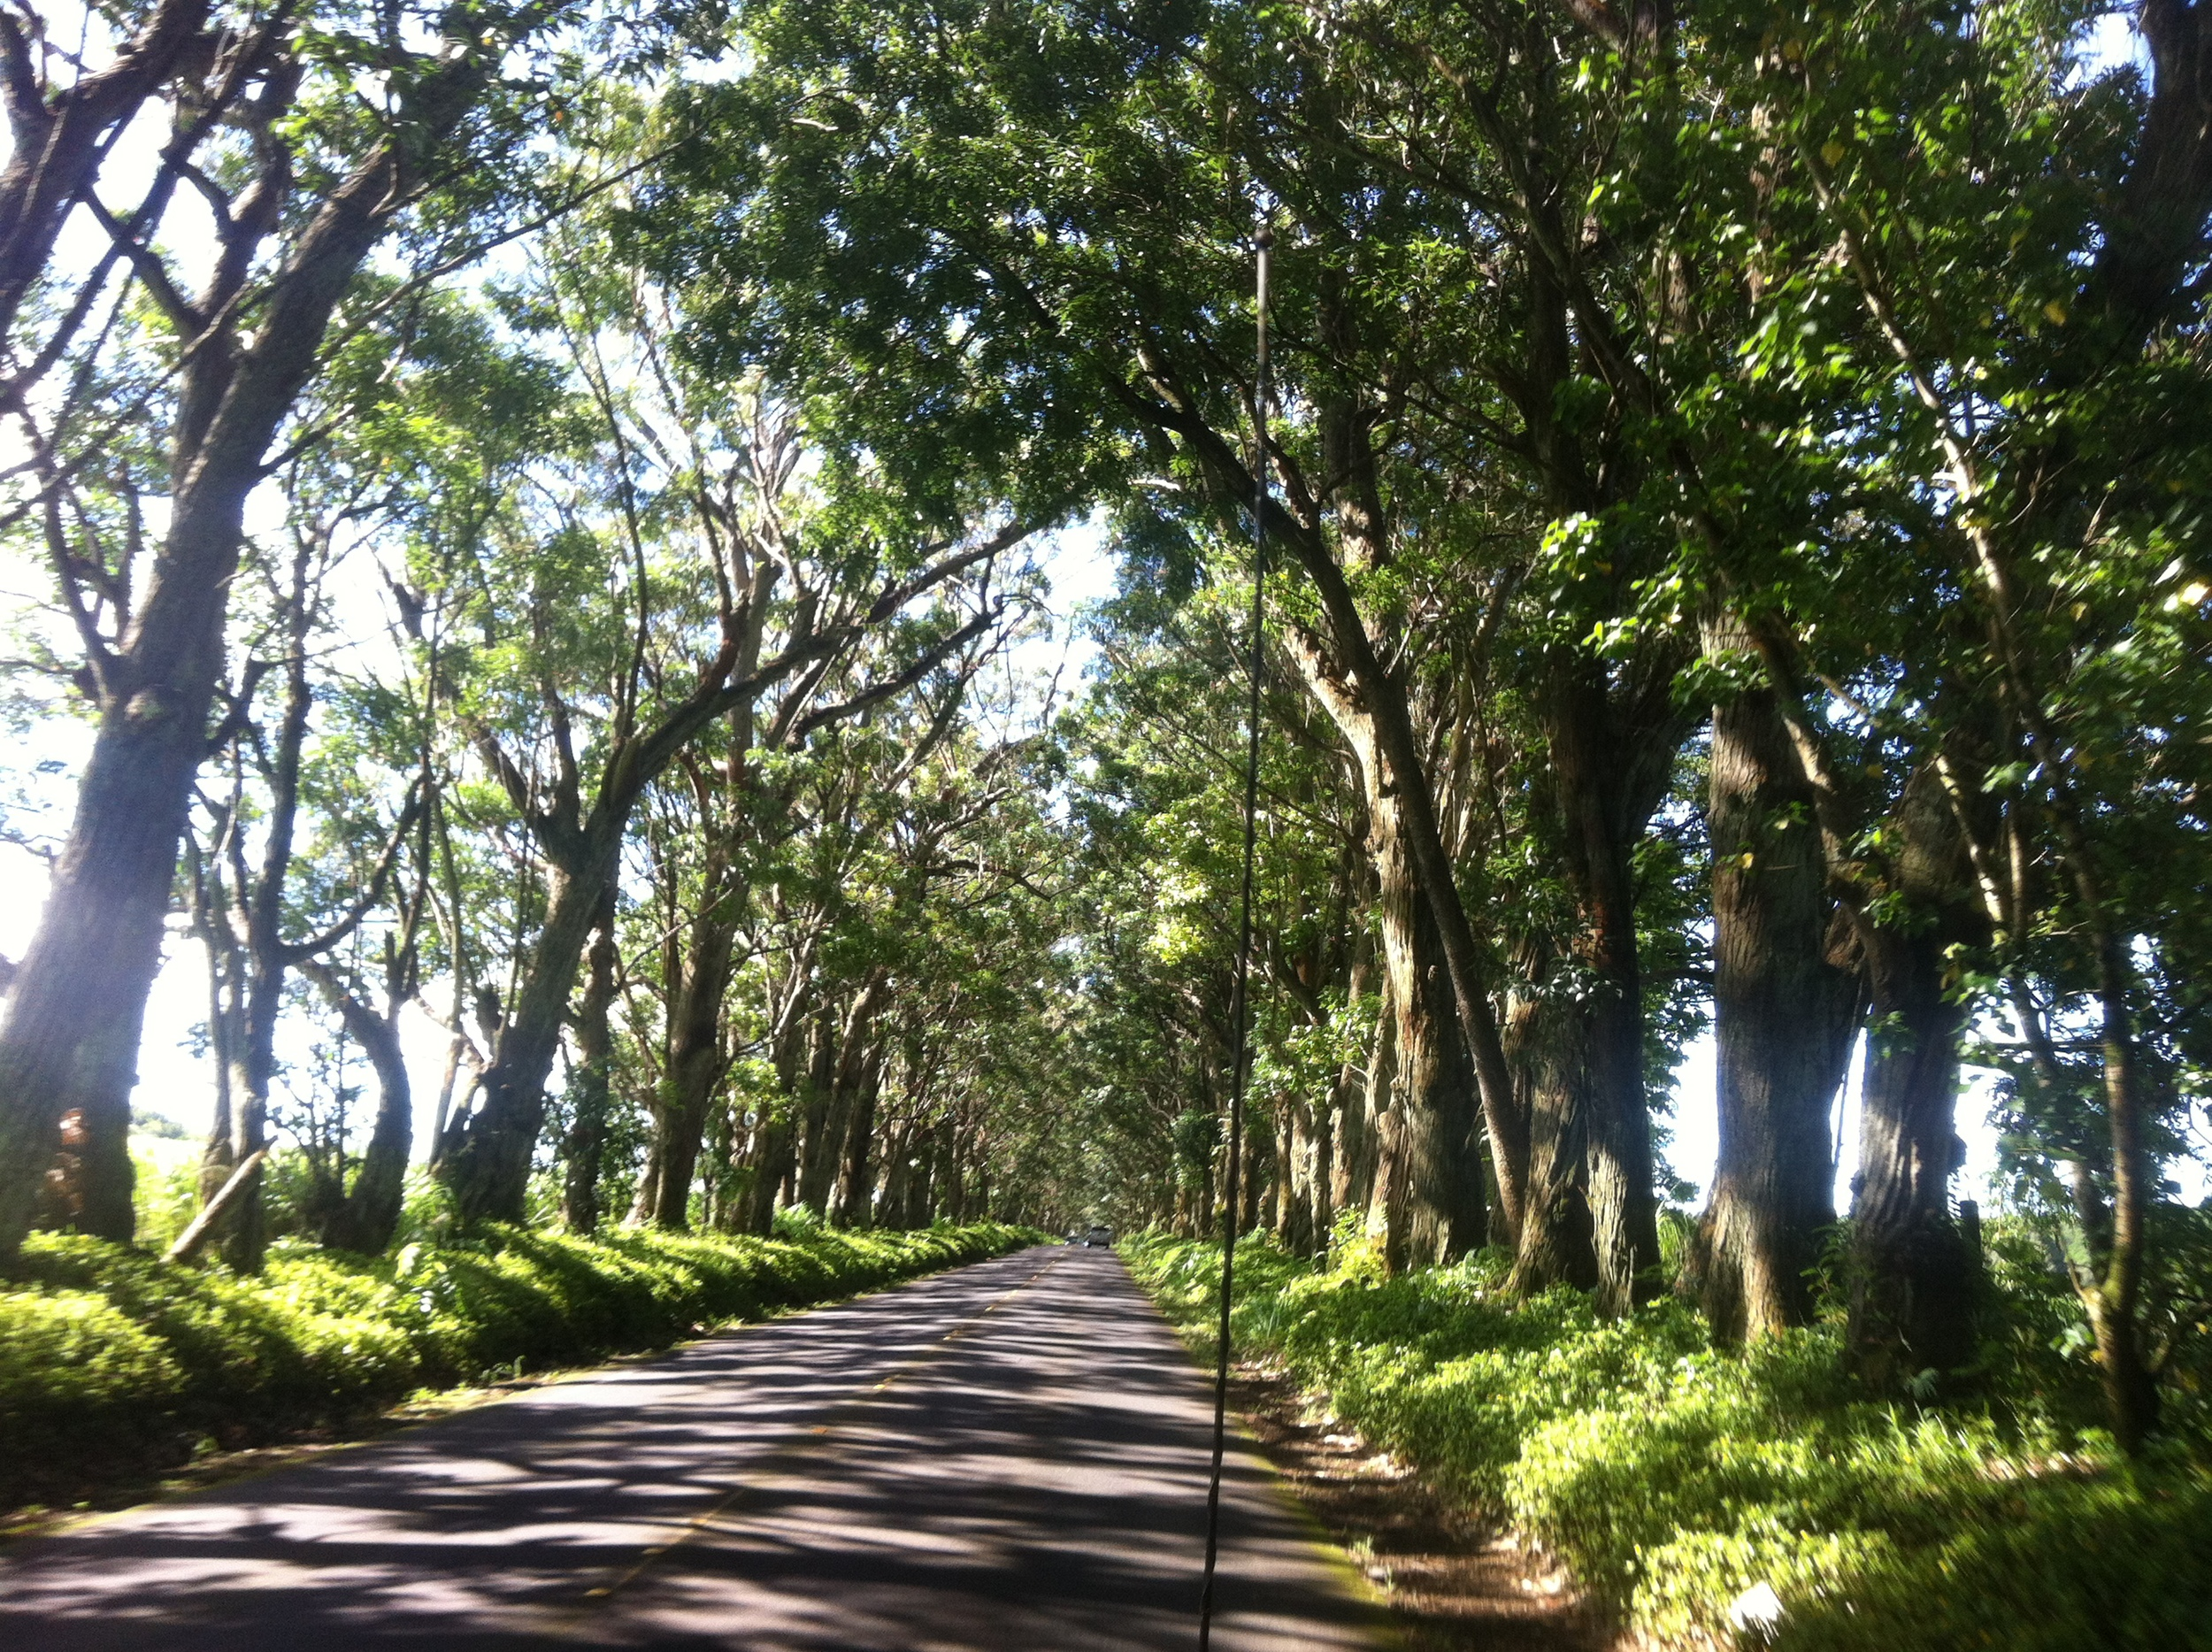 Tunnel of Trees, Kauai Hawai'i